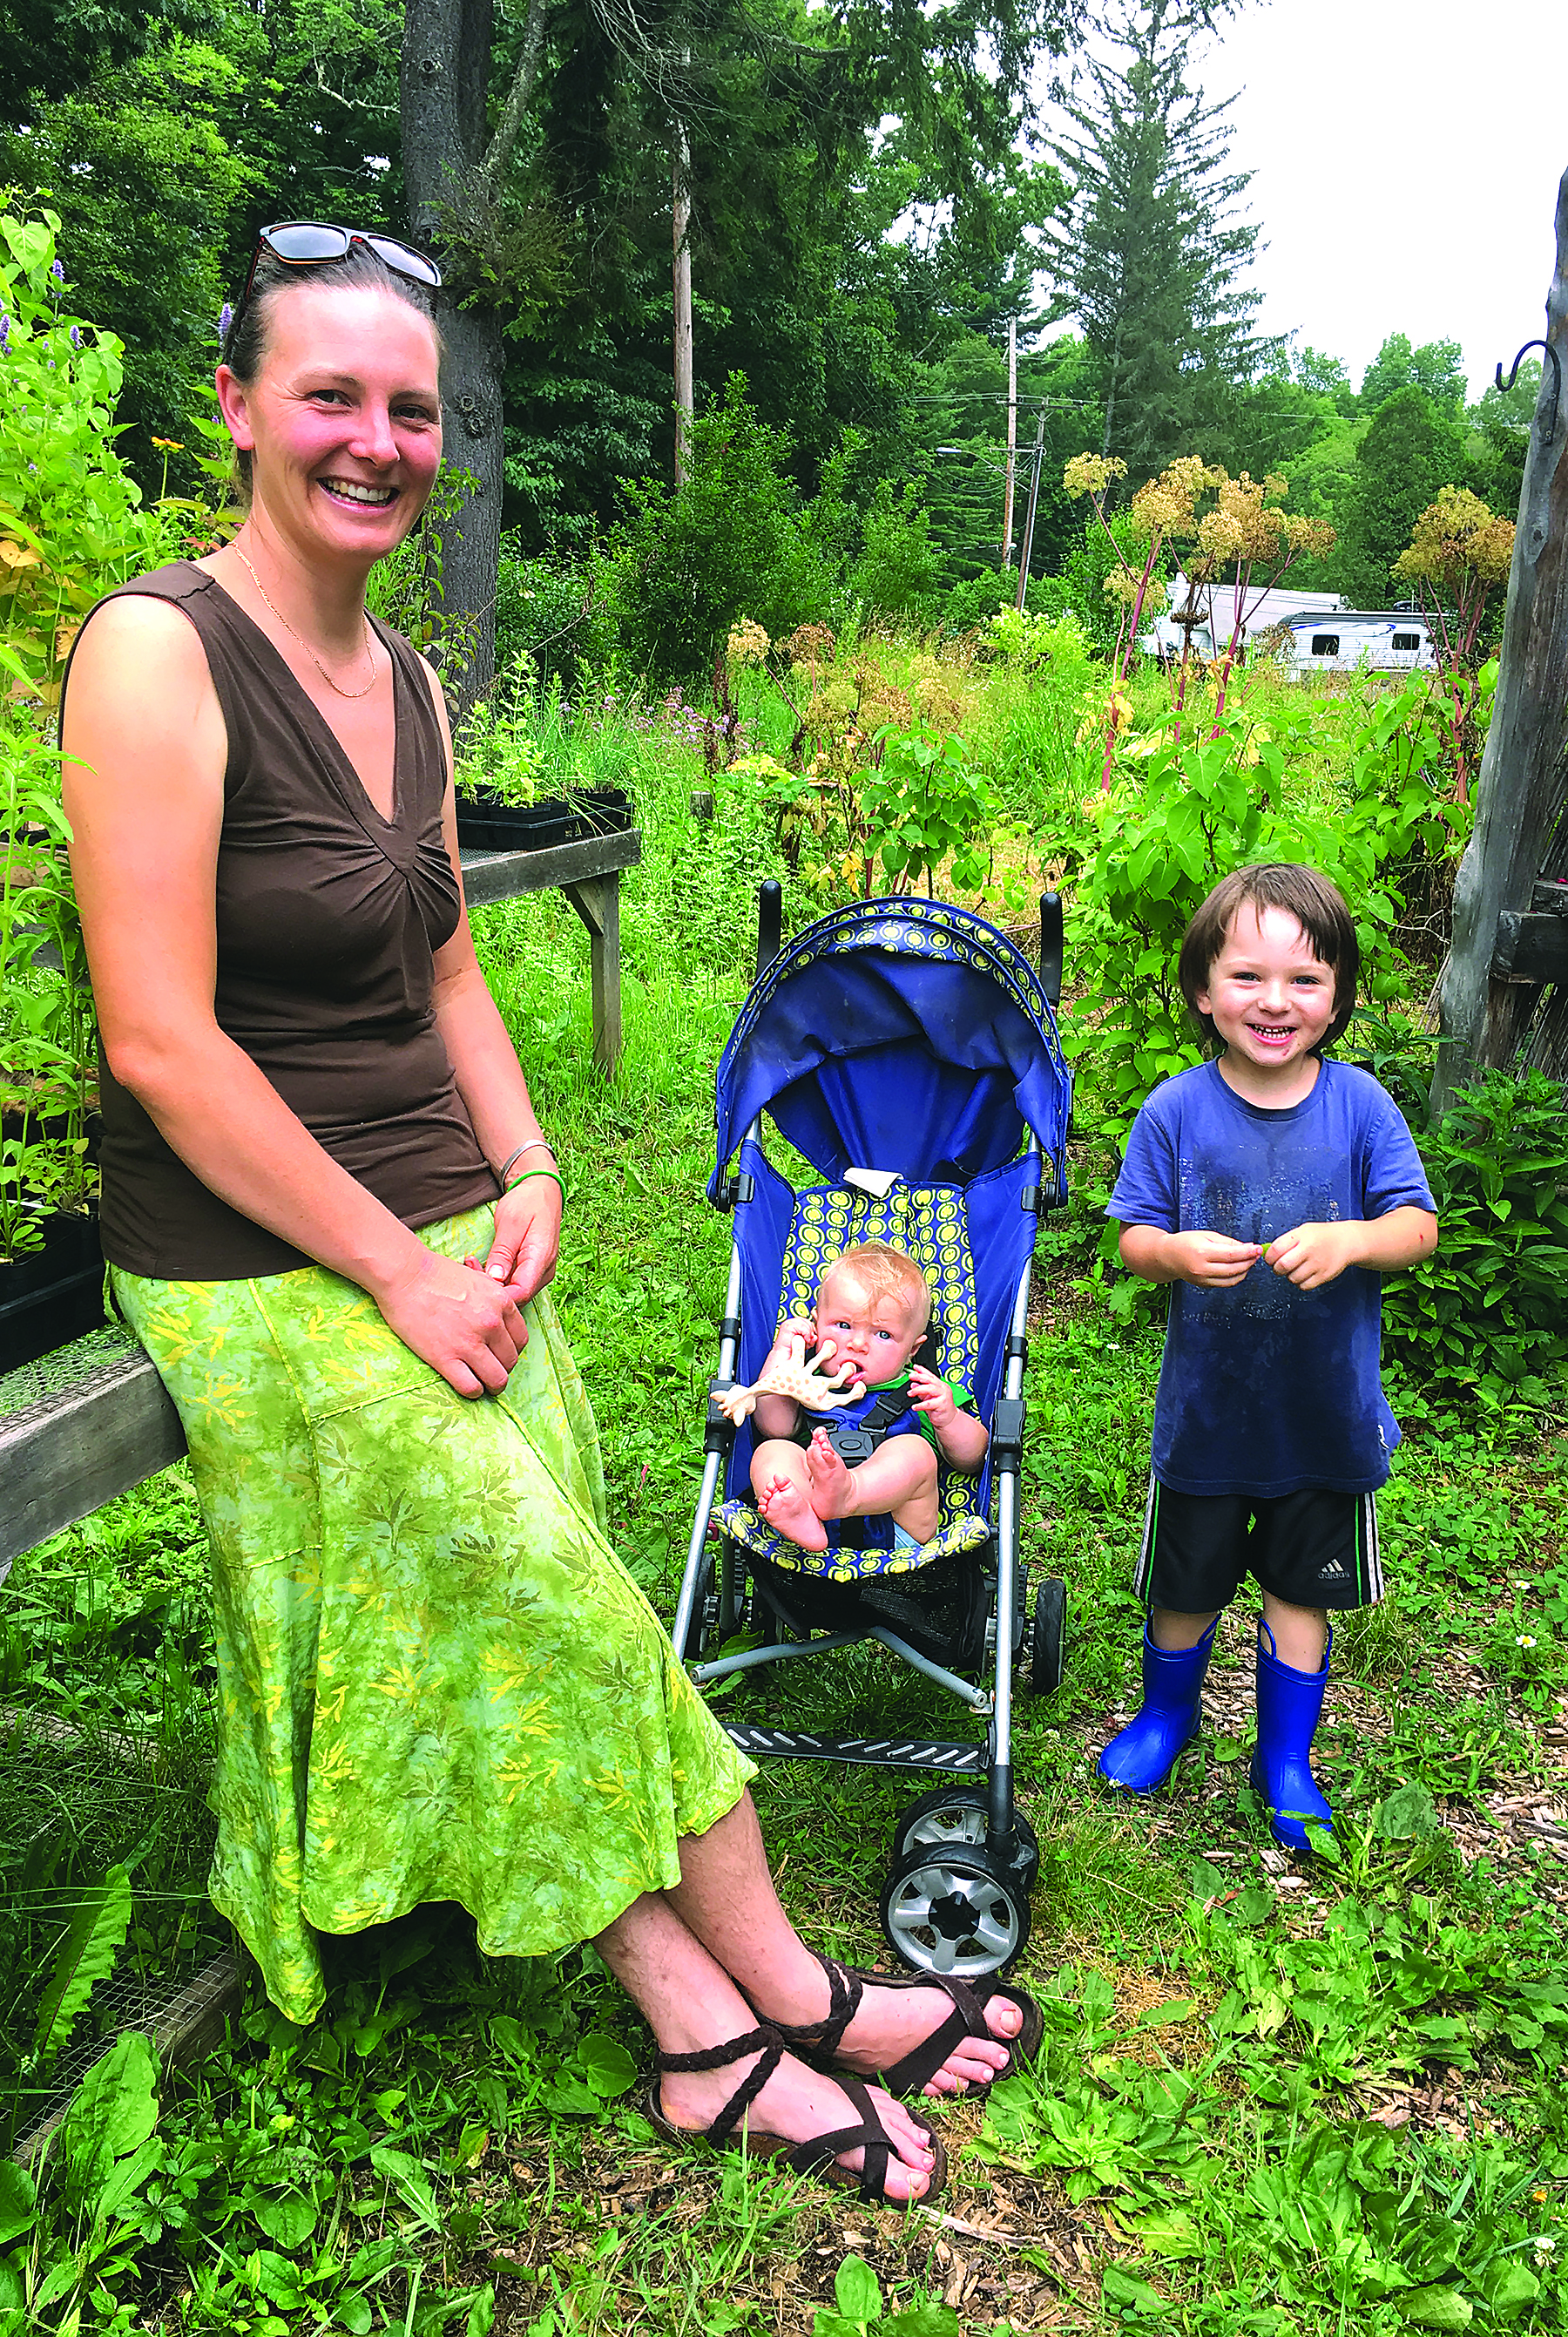 Cheyenne Zigmund and her two children take a break from chores on Root 'N Roost Farm in White Sulphur Springs.